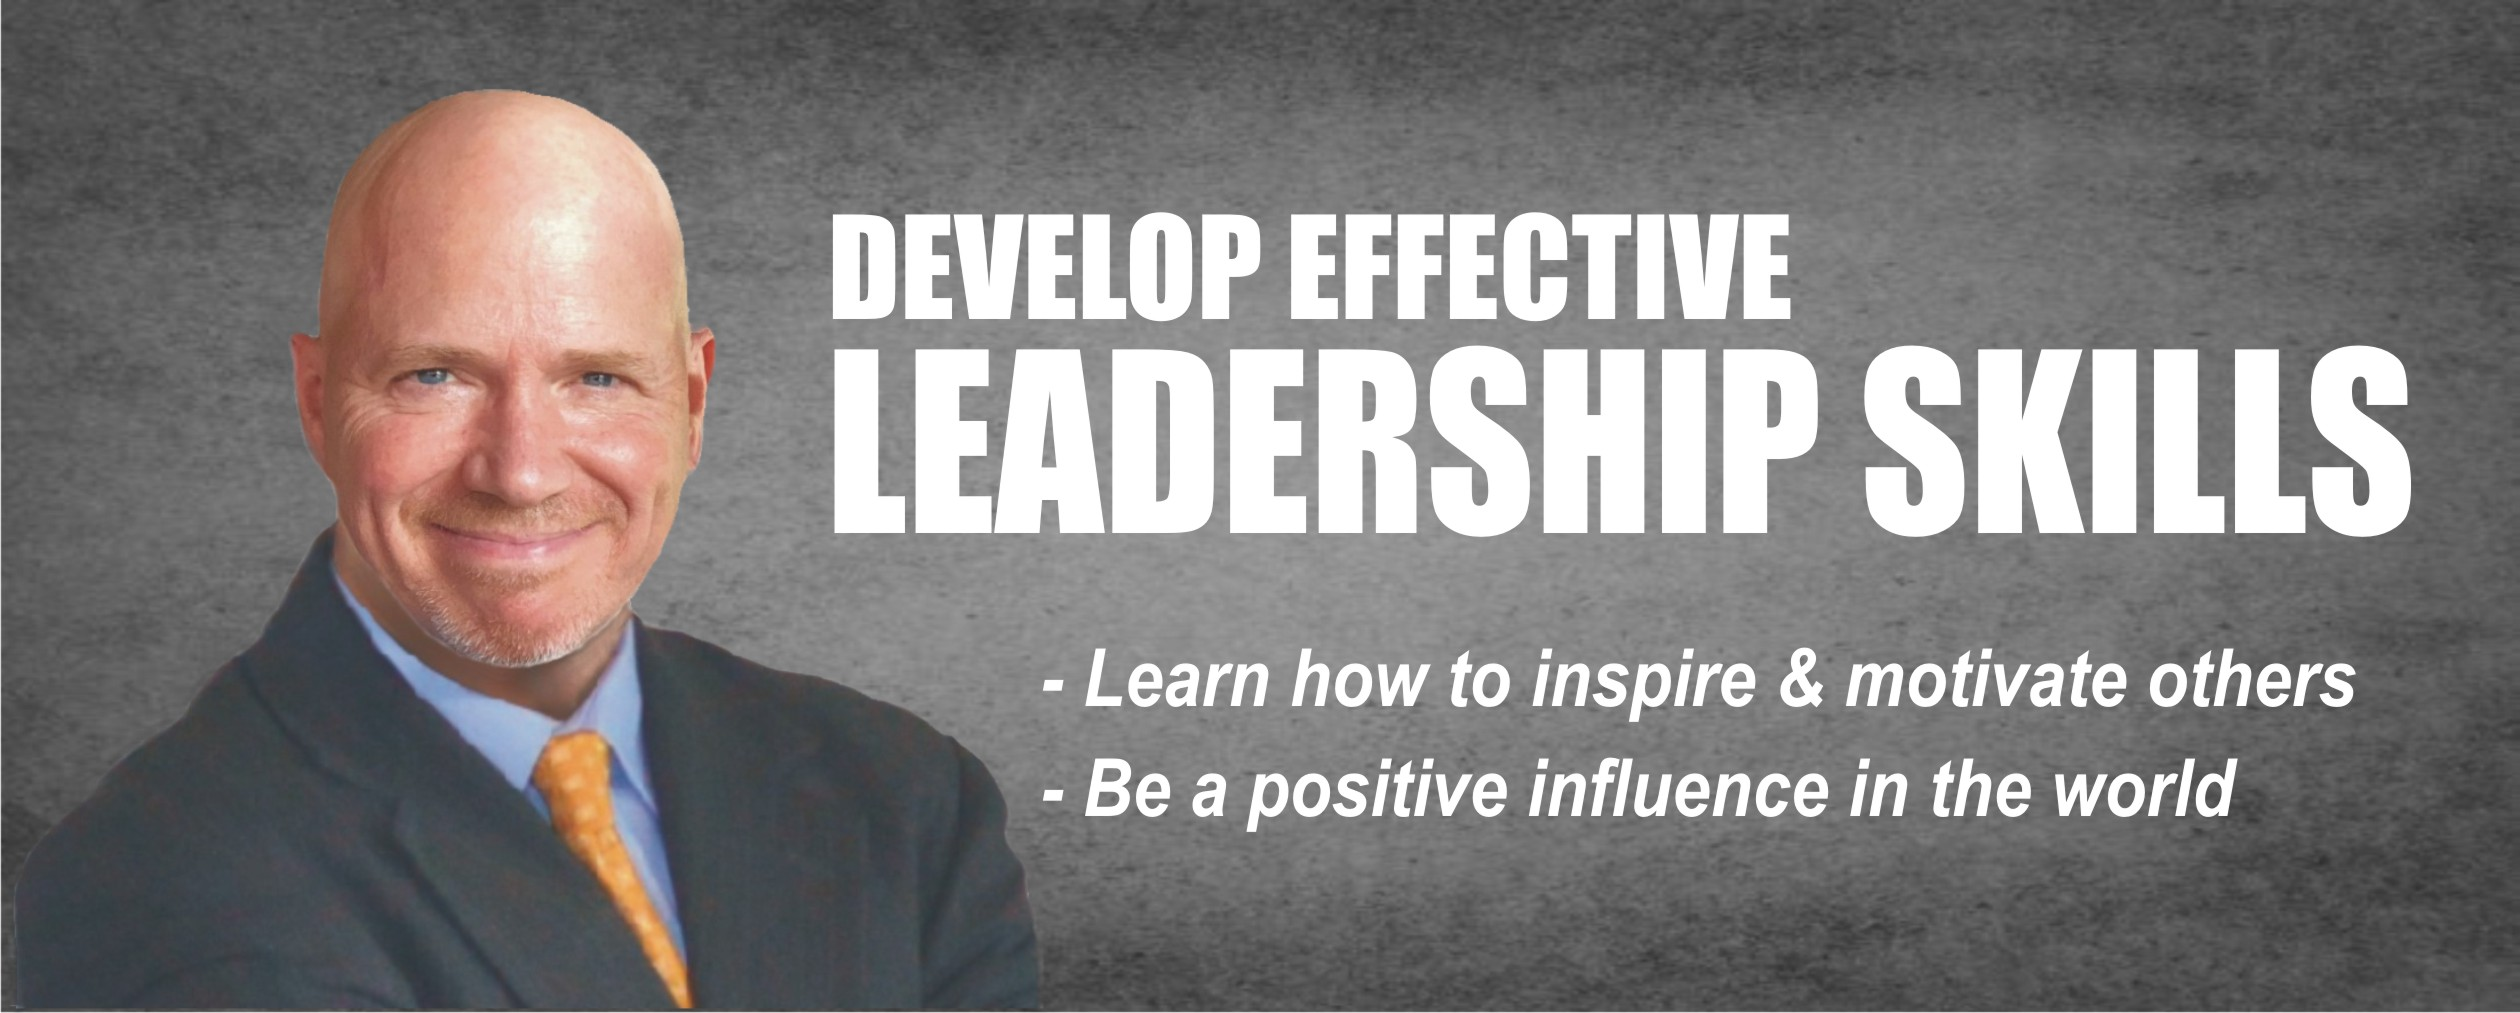 Ron Frost Leadership